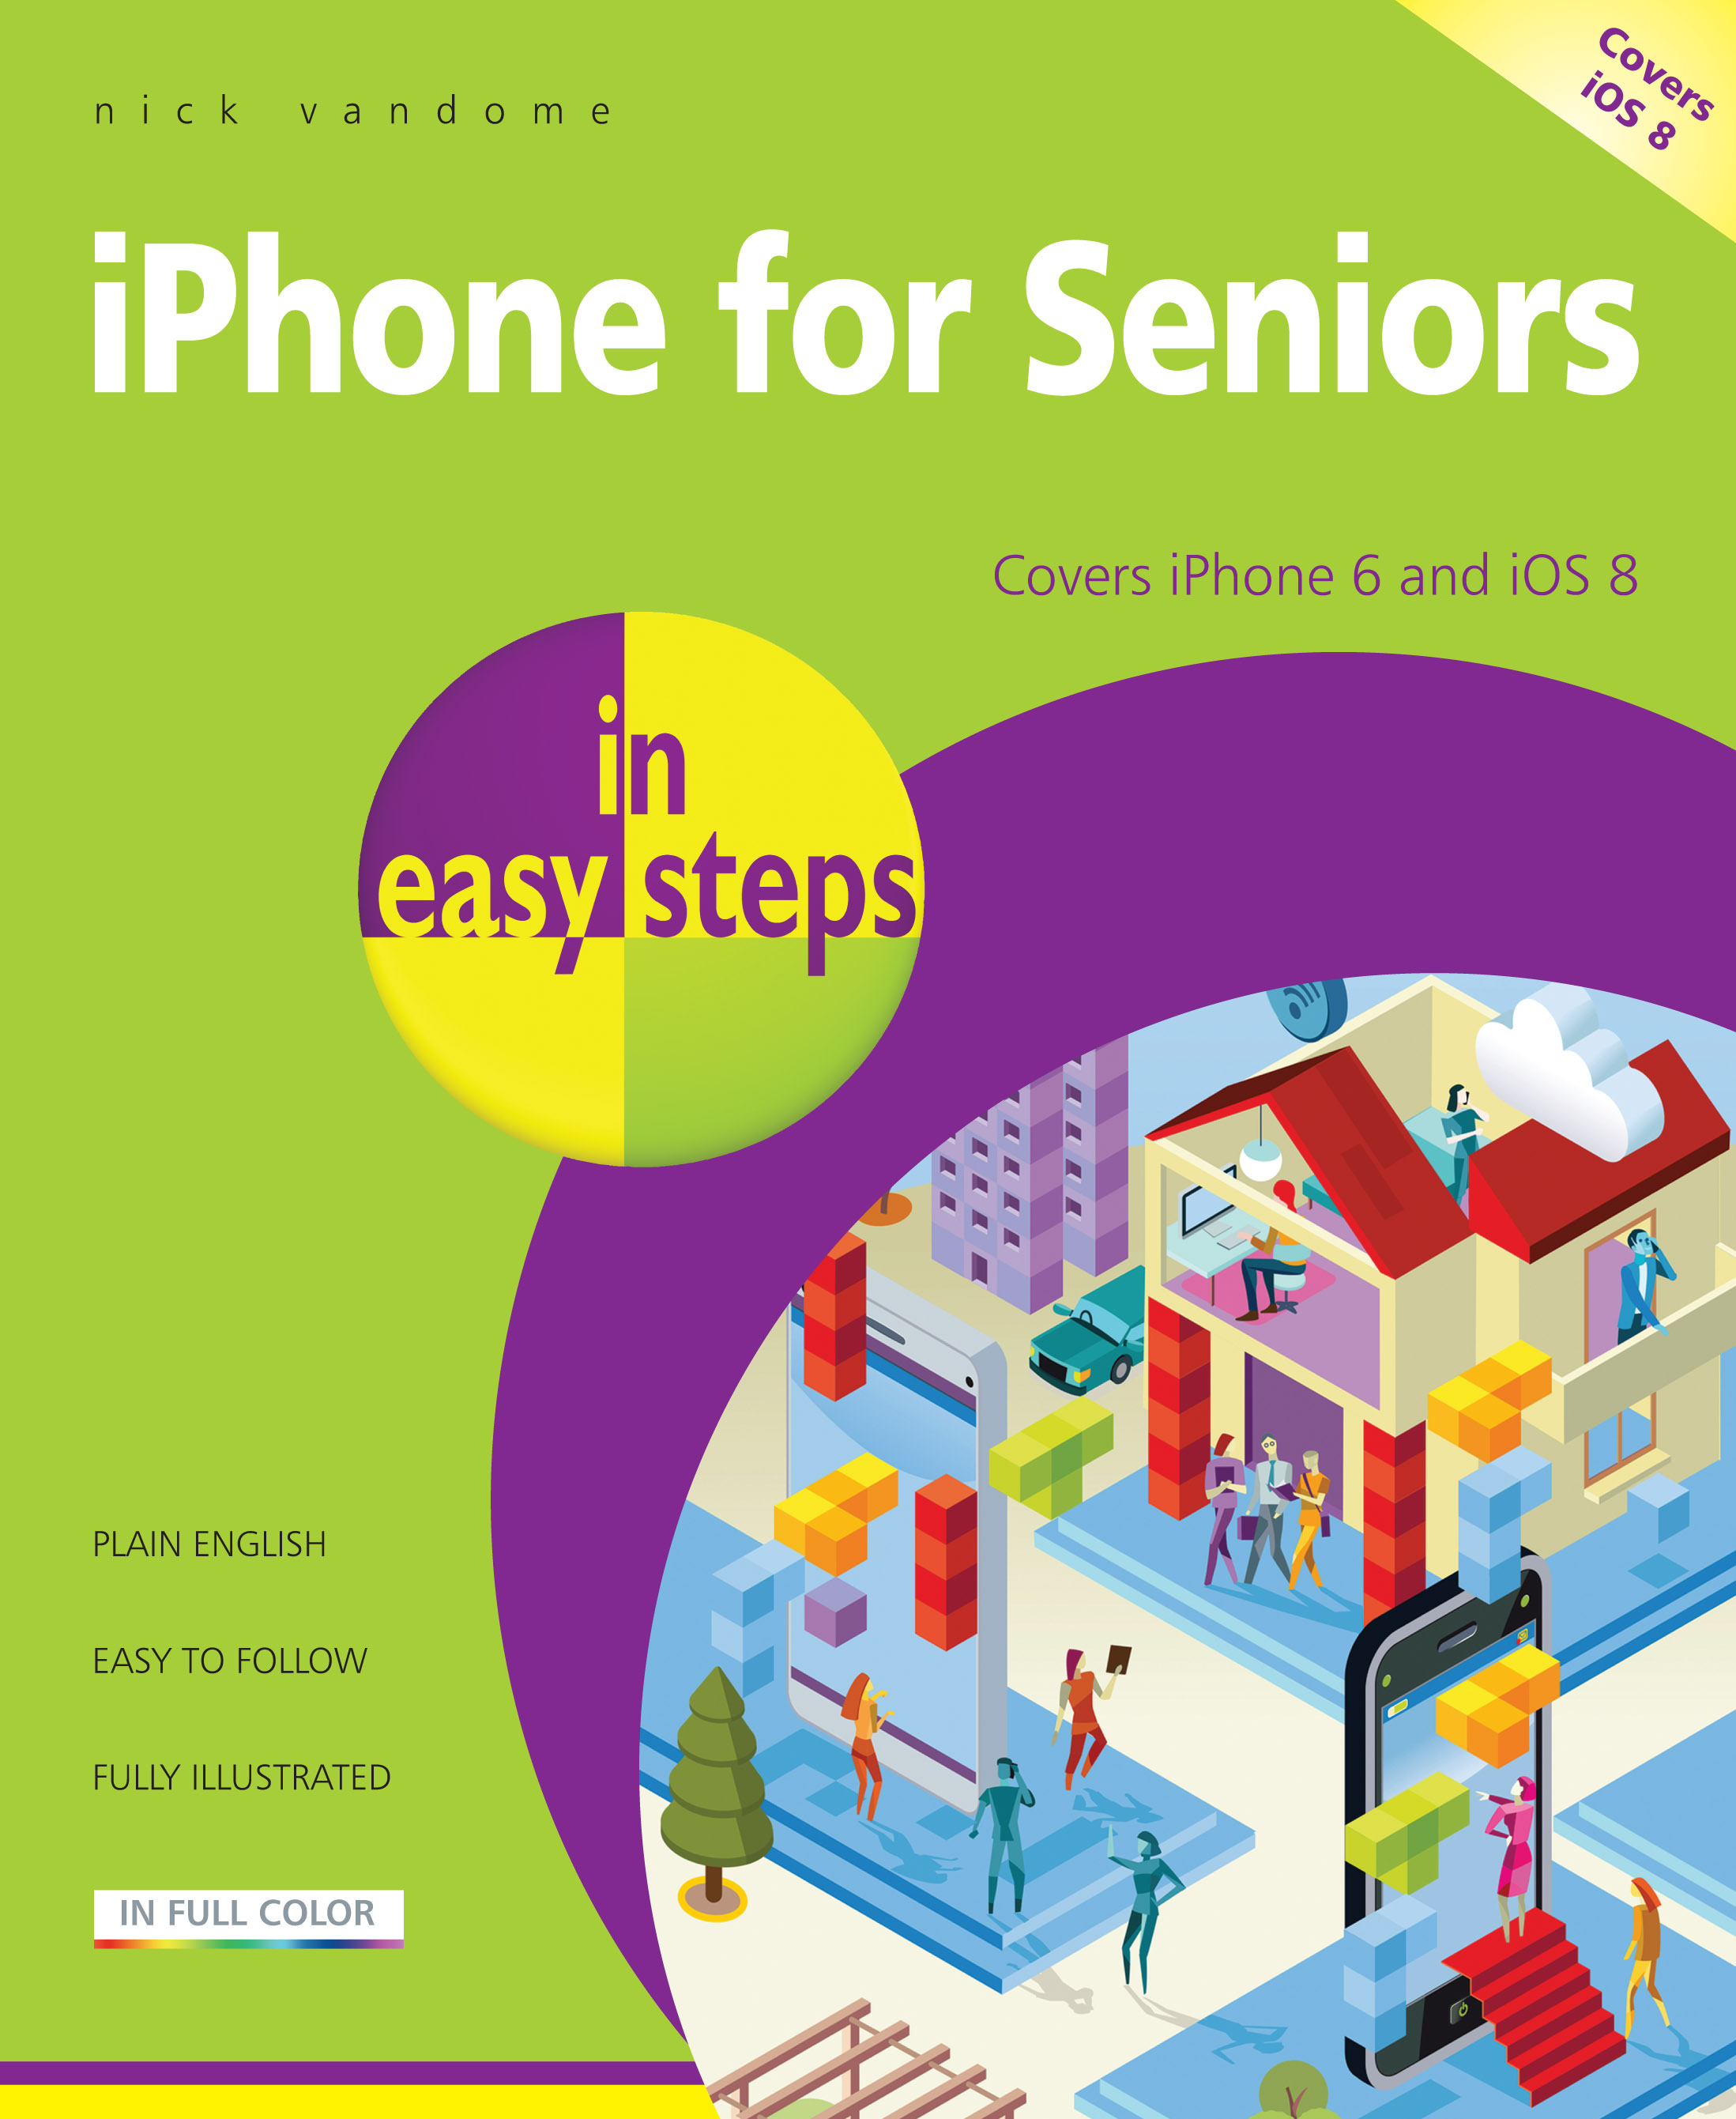 9781840786385 iPhone for Seniors in easy steps iOS 8